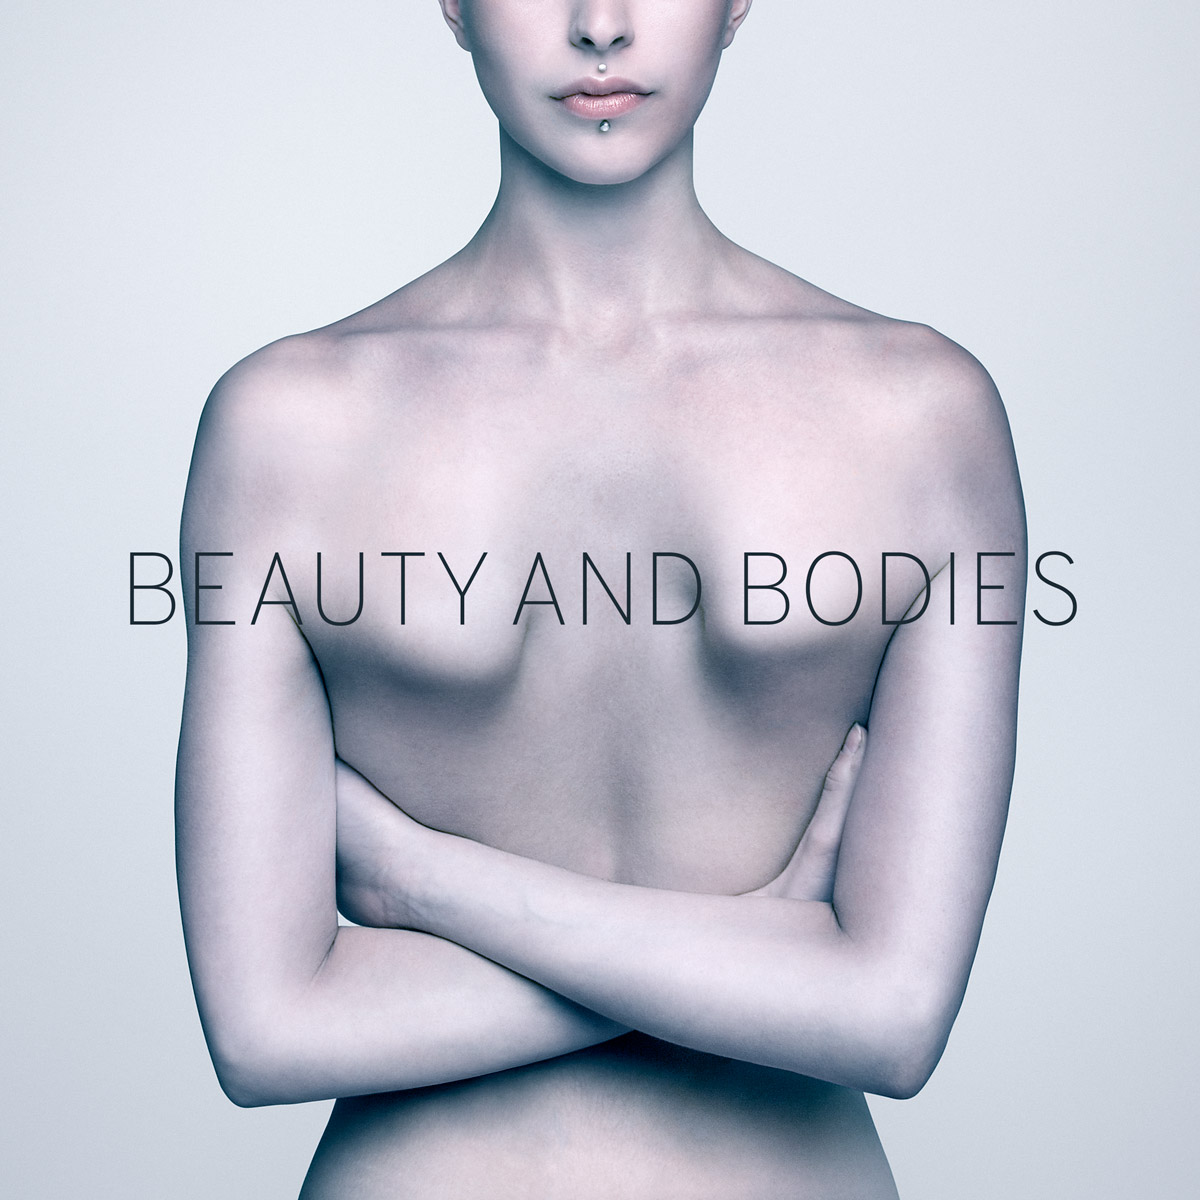 BEAUTY AND BODIES